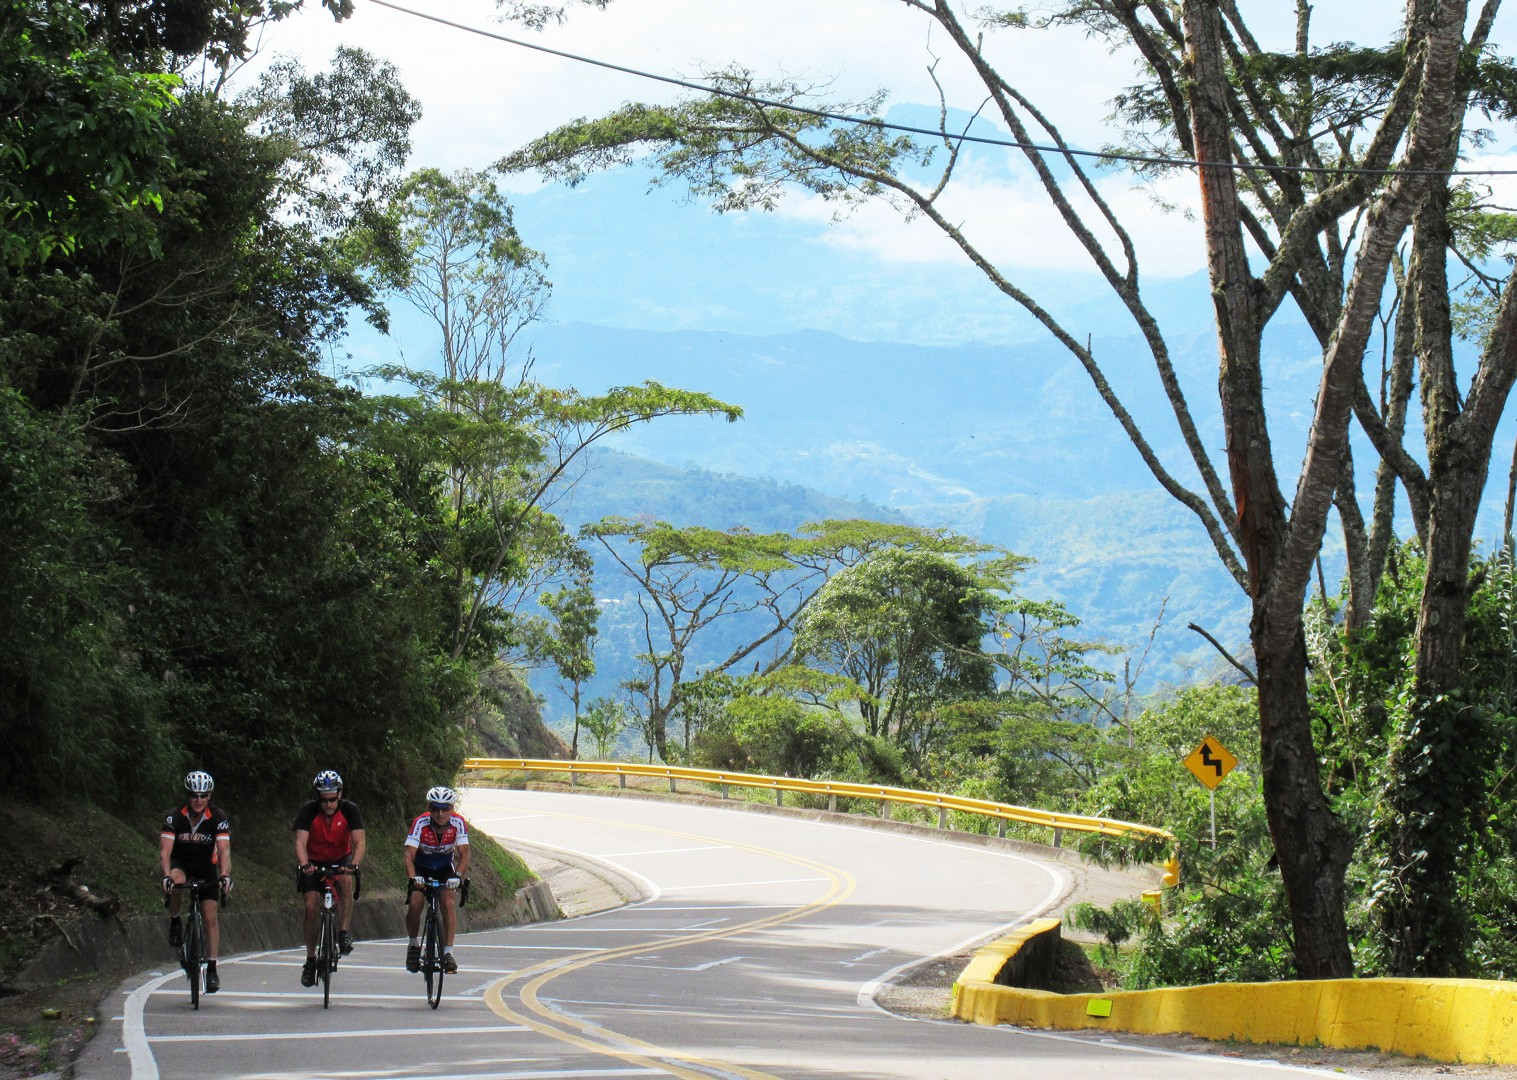 saddle-skedaddle-guided-road-cycling-holiday-emerald-mountains-colombia-caribbean-beaches.JPG - Colombia - Tres Cordilleras - Guided Road Cycling Holiday - Road Cycling